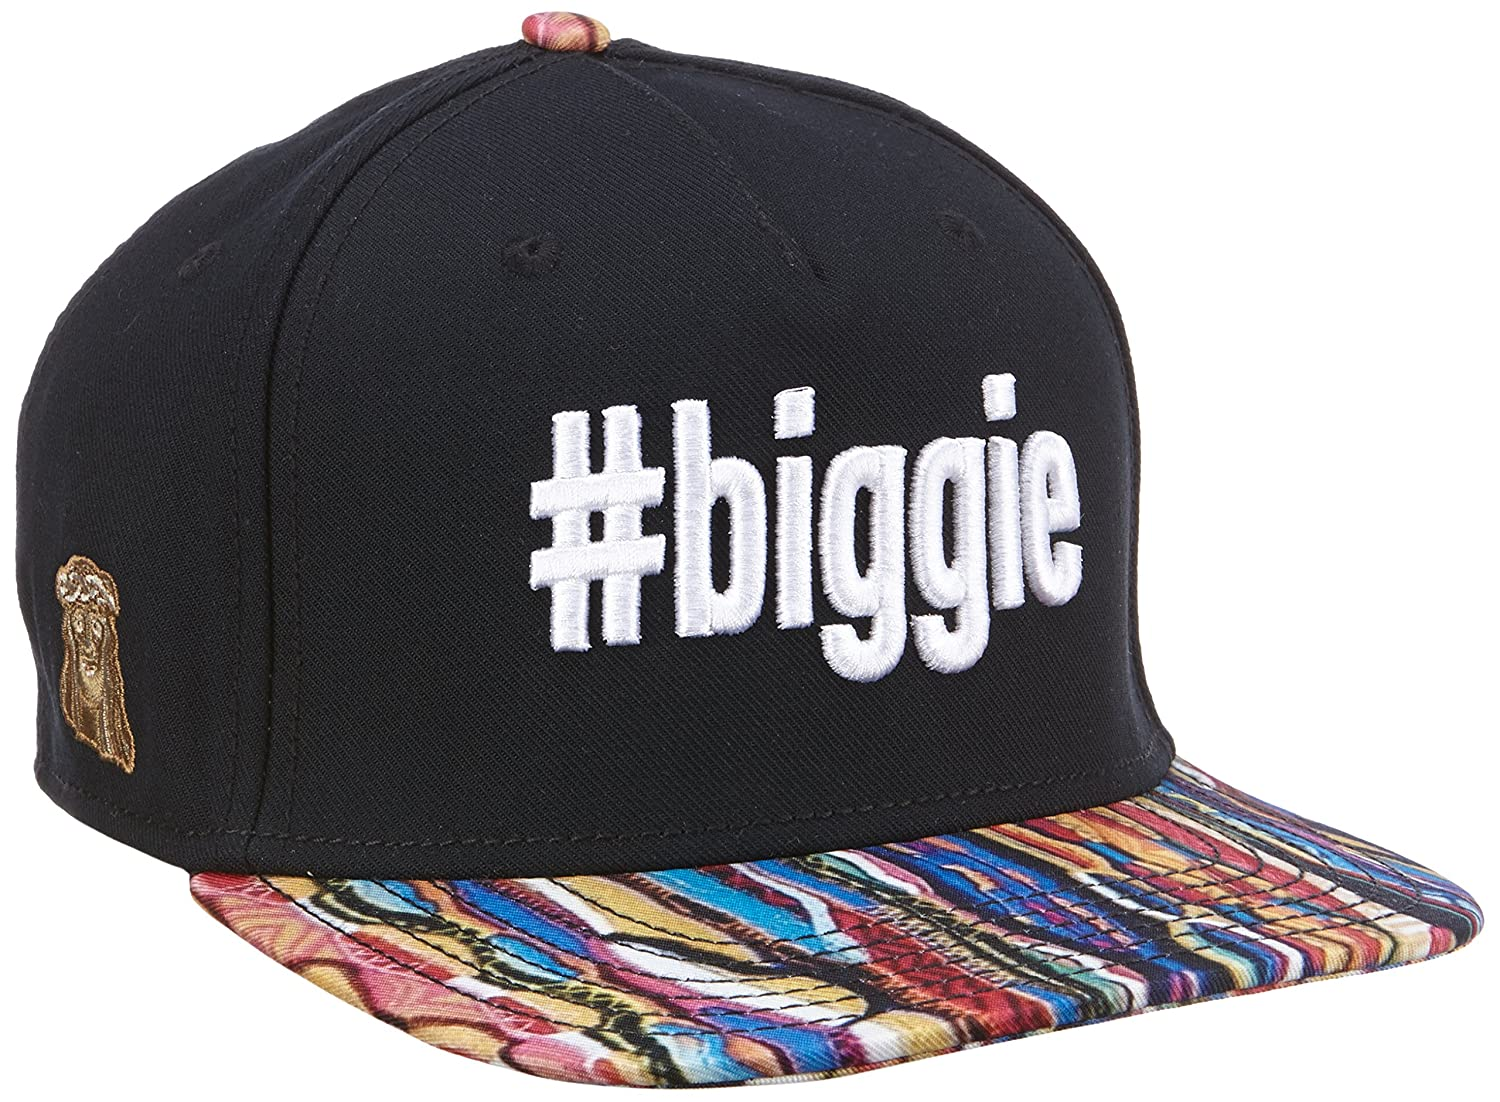 Cayler & Sons Kappe Biggie - Gorra, Color Negro/Blanco, Talla ...